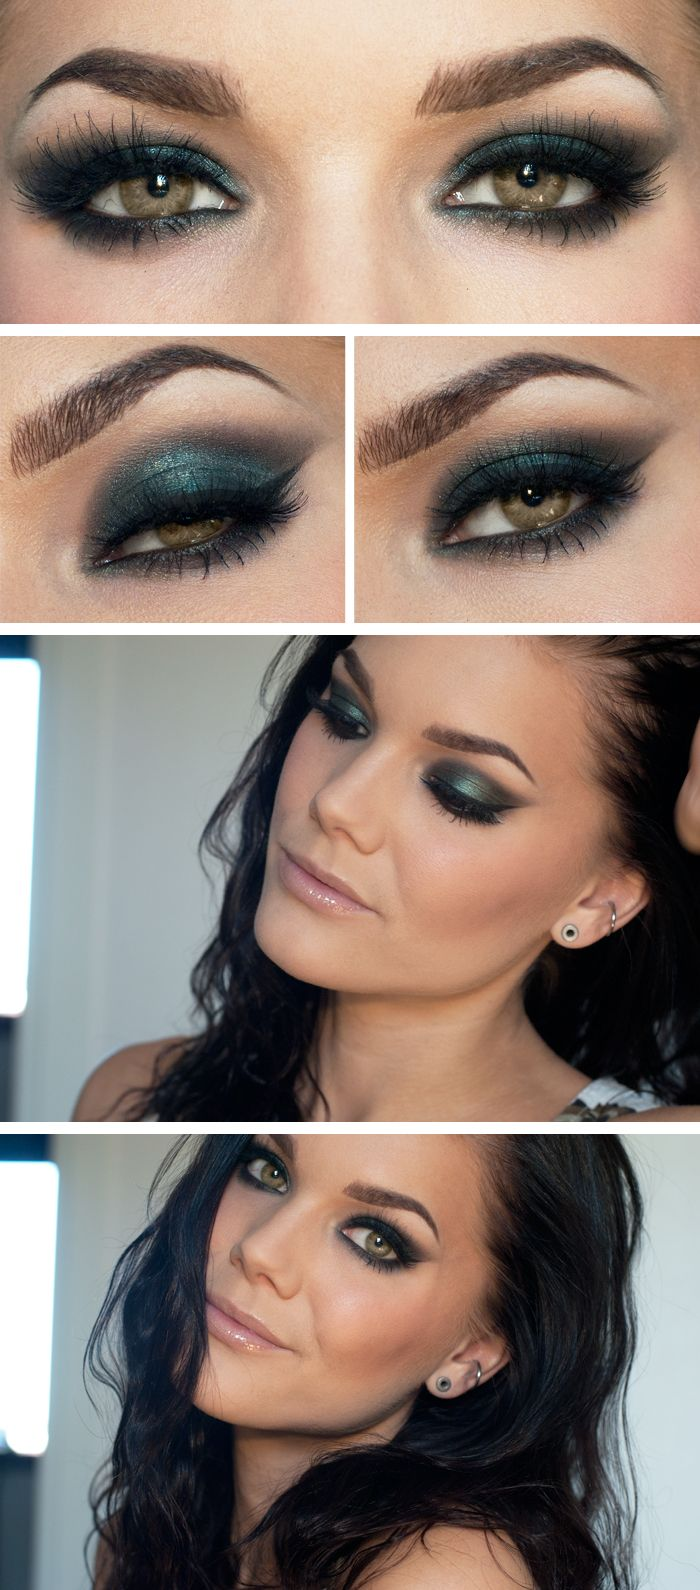 Todays look - What kind of future | #dark #smokey